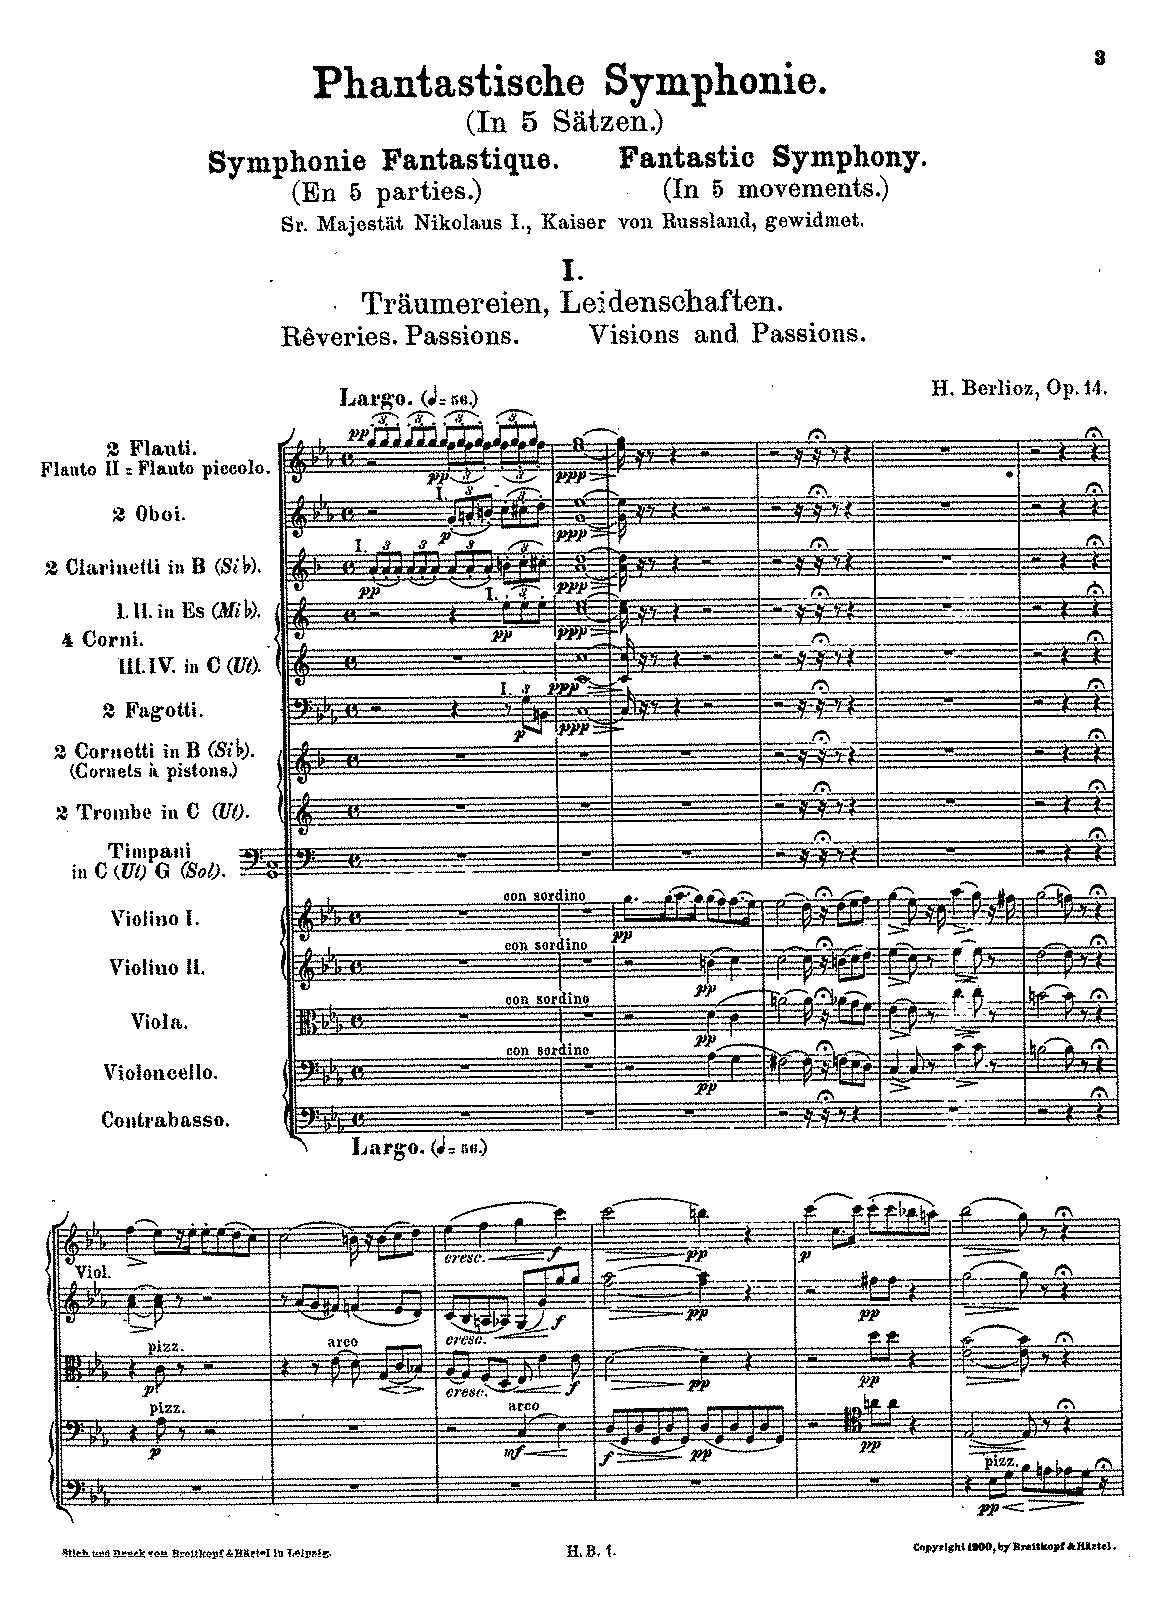 berlioz symphonie fantastique 4th movement Print and download symphonie fantastique, op 14 - 4th movement [main theme] sheet music composed by hector berlioz arranged for saxophone instrumental solo in d major sku: mn0158344.